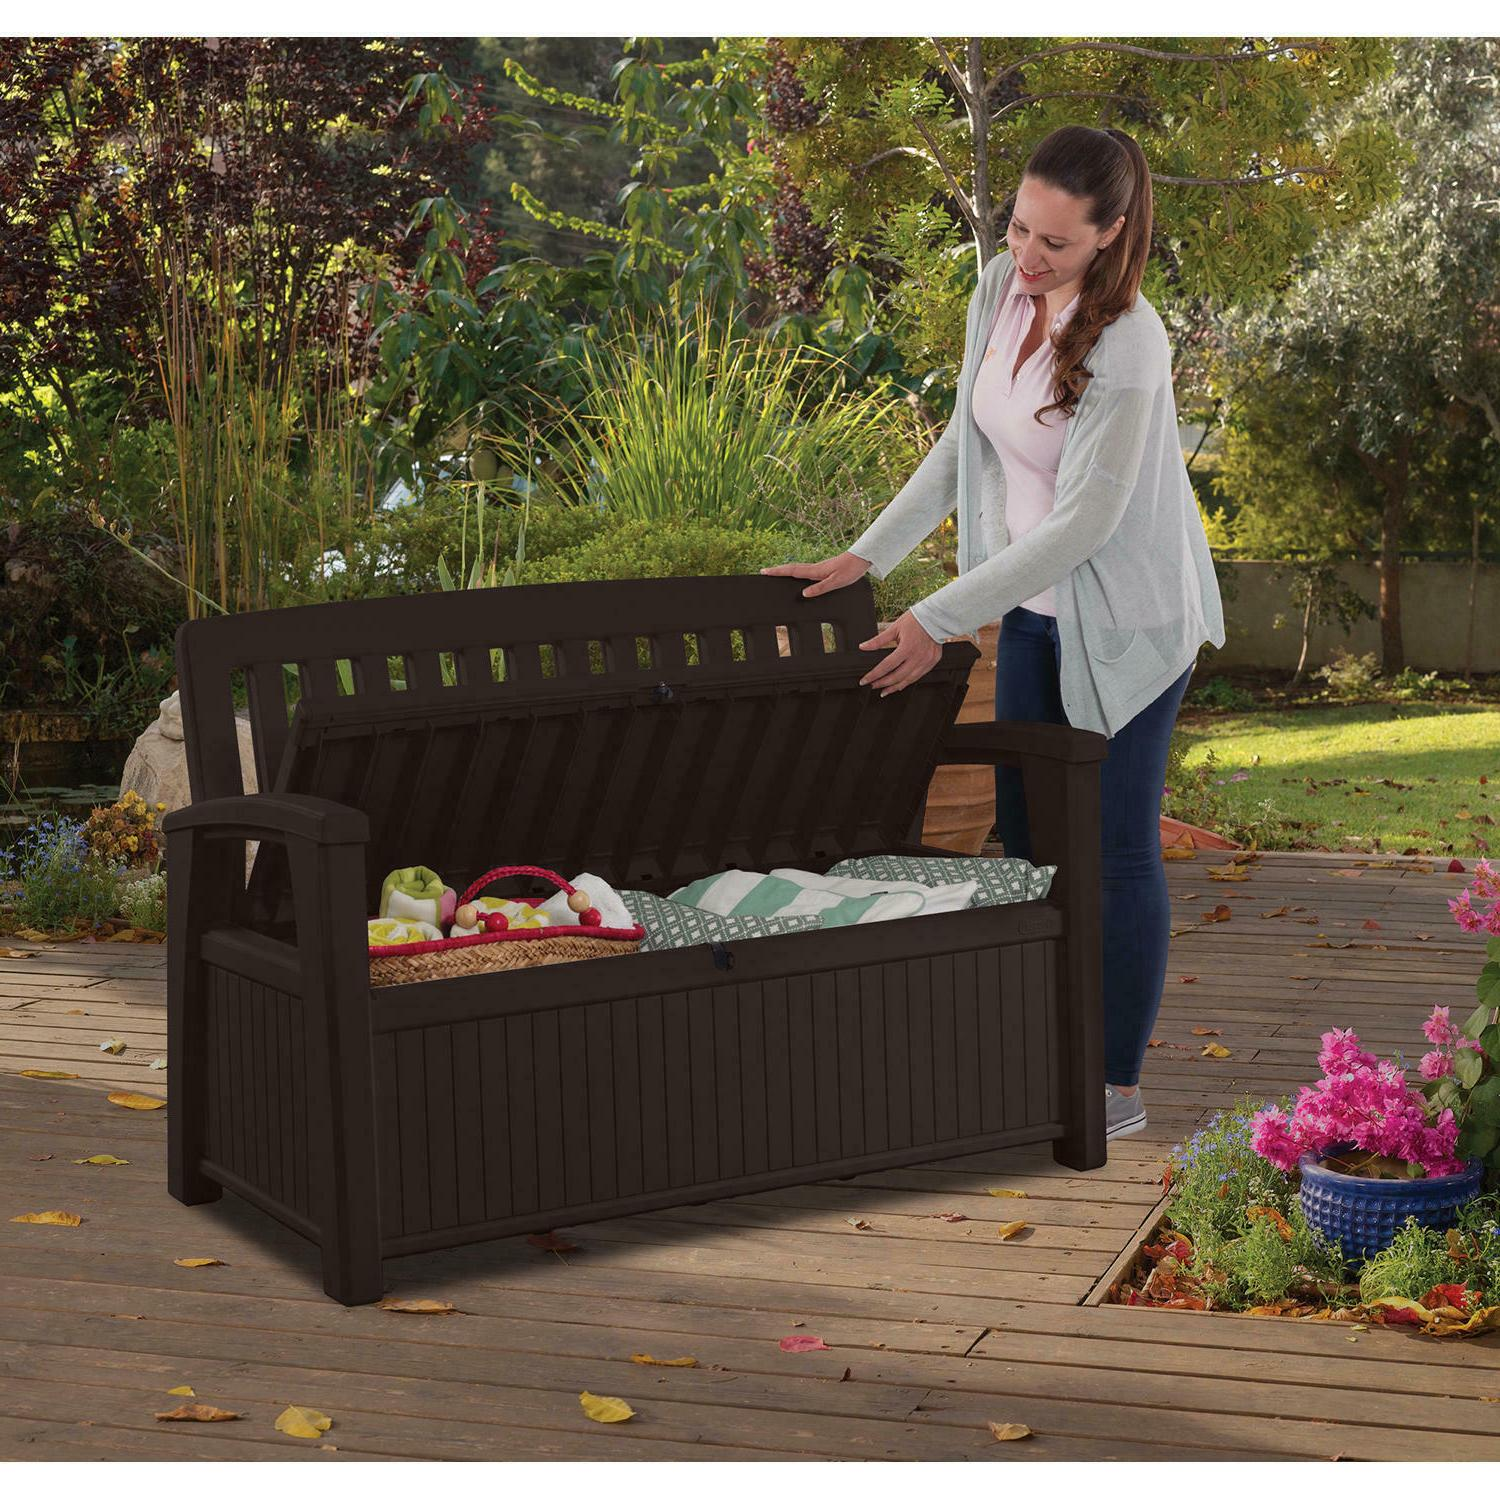 Keter deck All-Weather Outdoor Bench